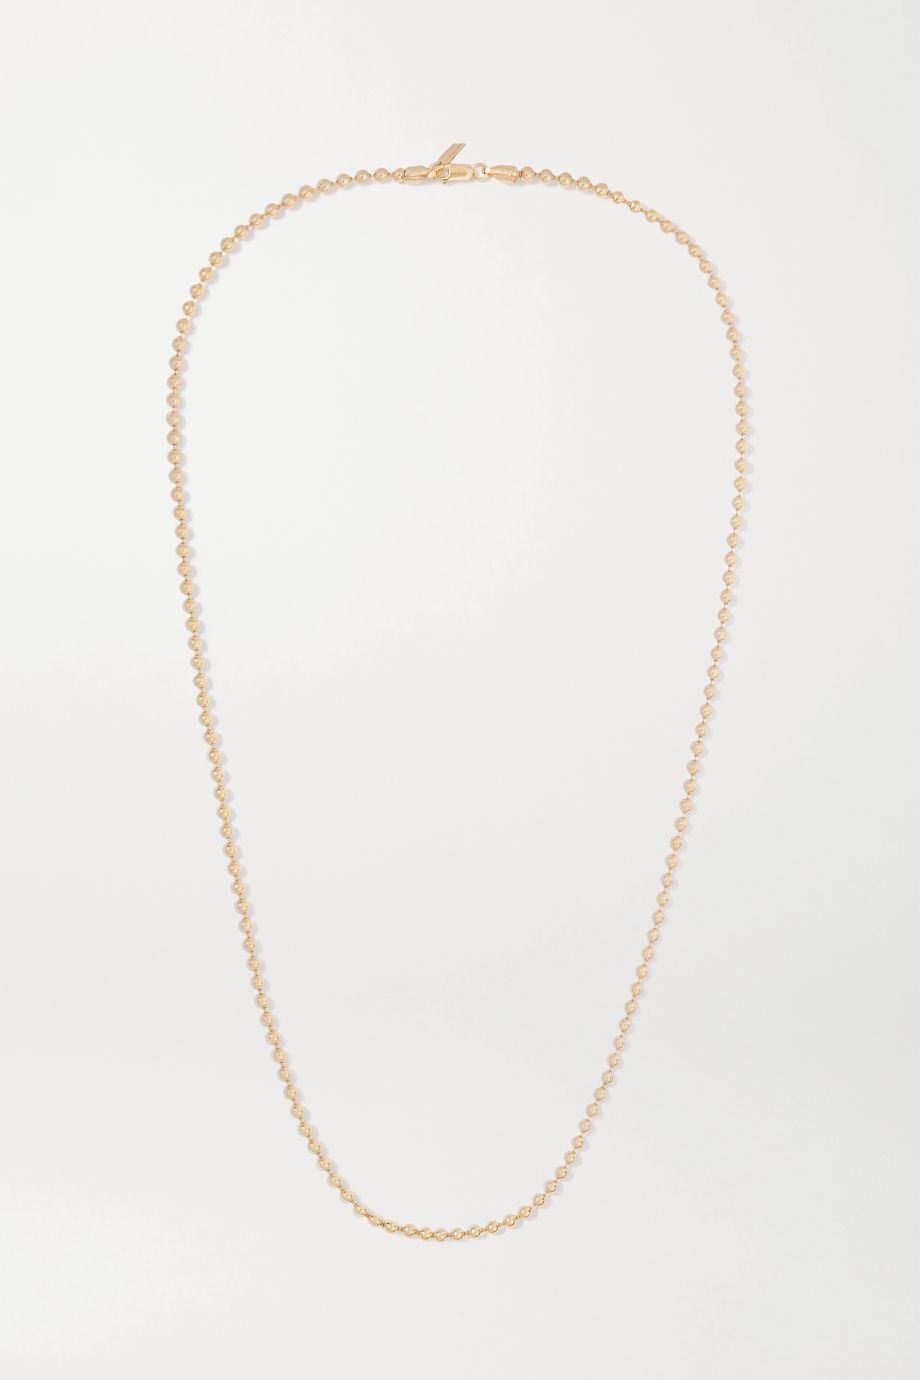 Loren Stewart + NET SUSTAIN Gold vermeil necklace